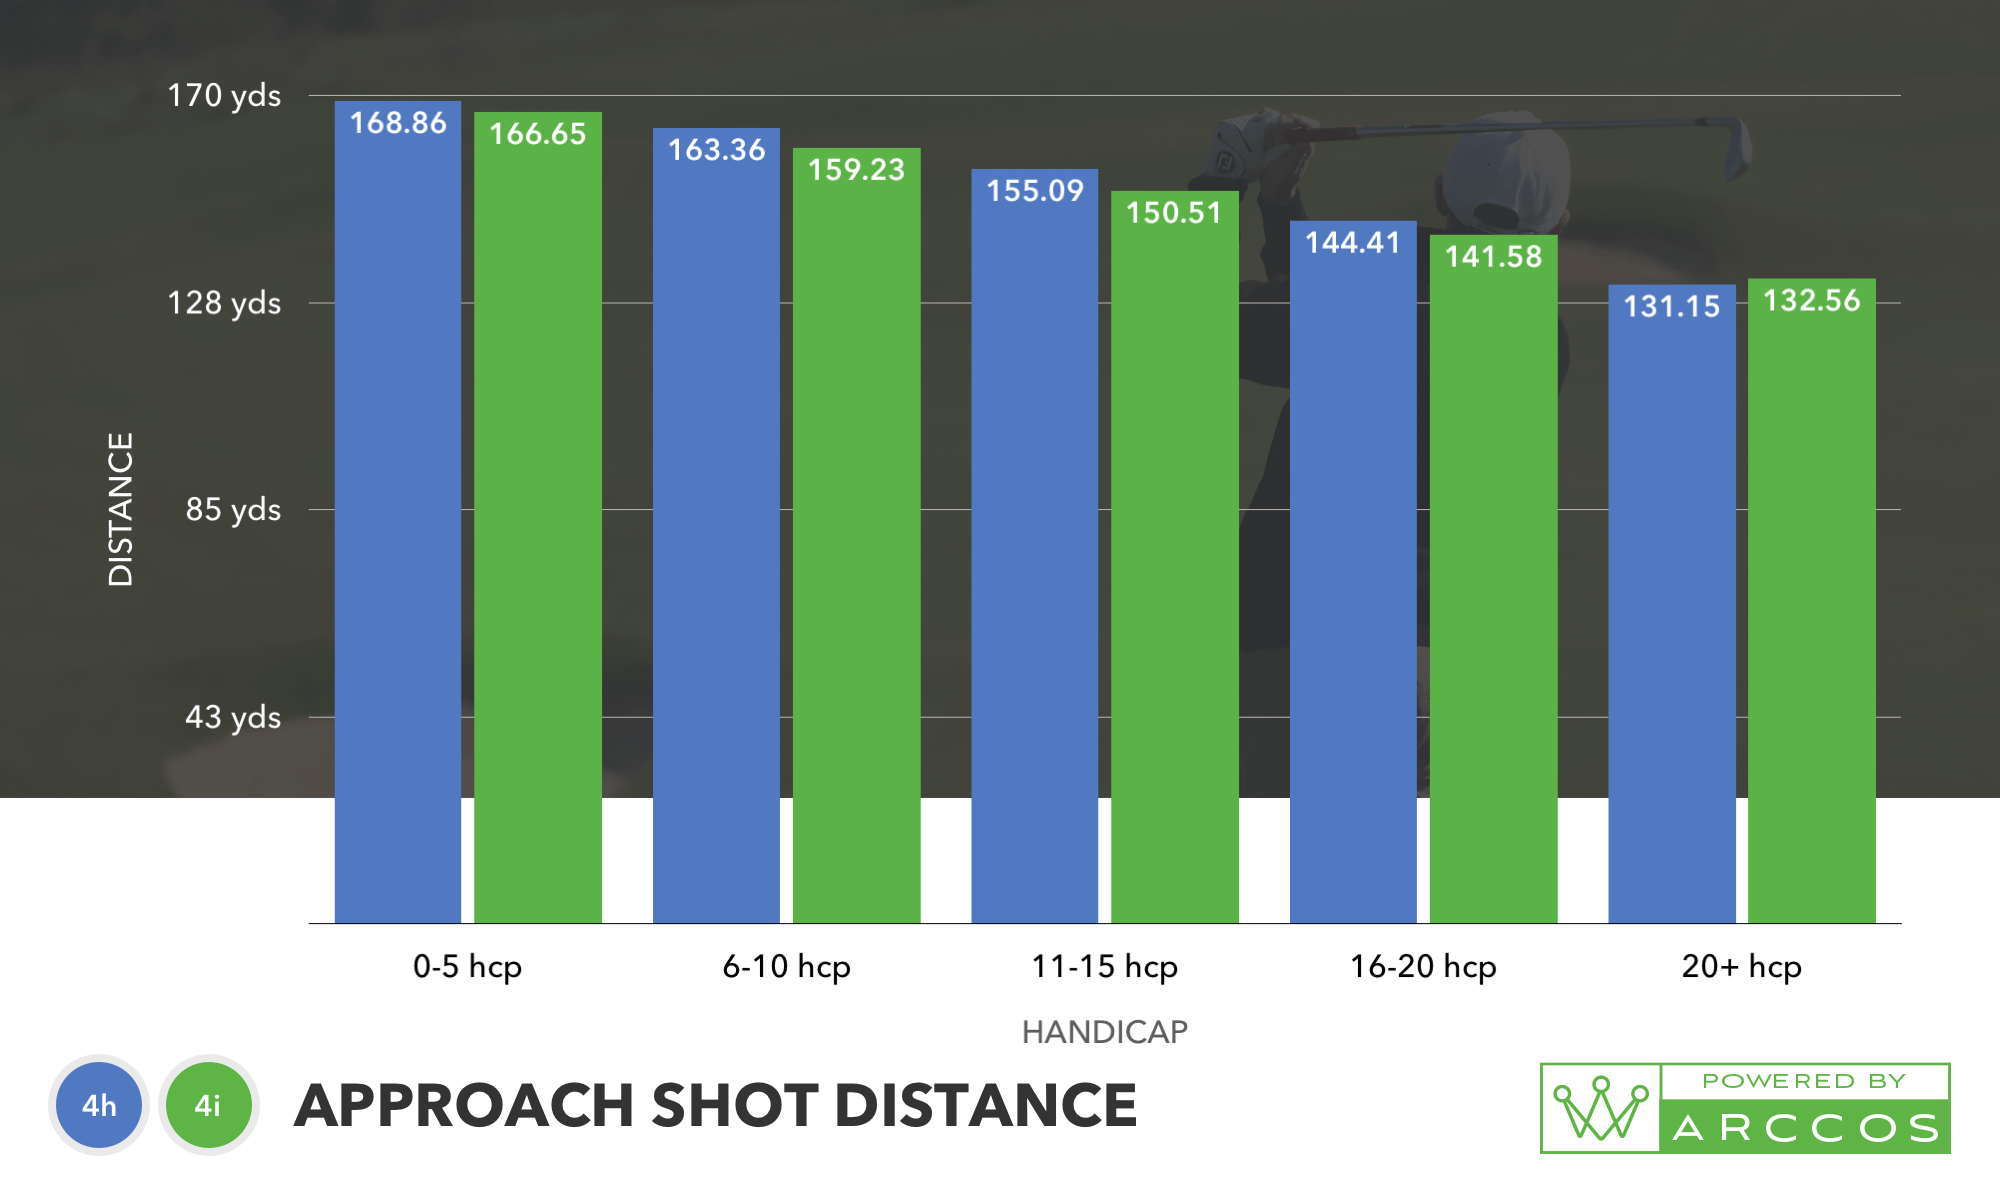 Approach Shot Distance